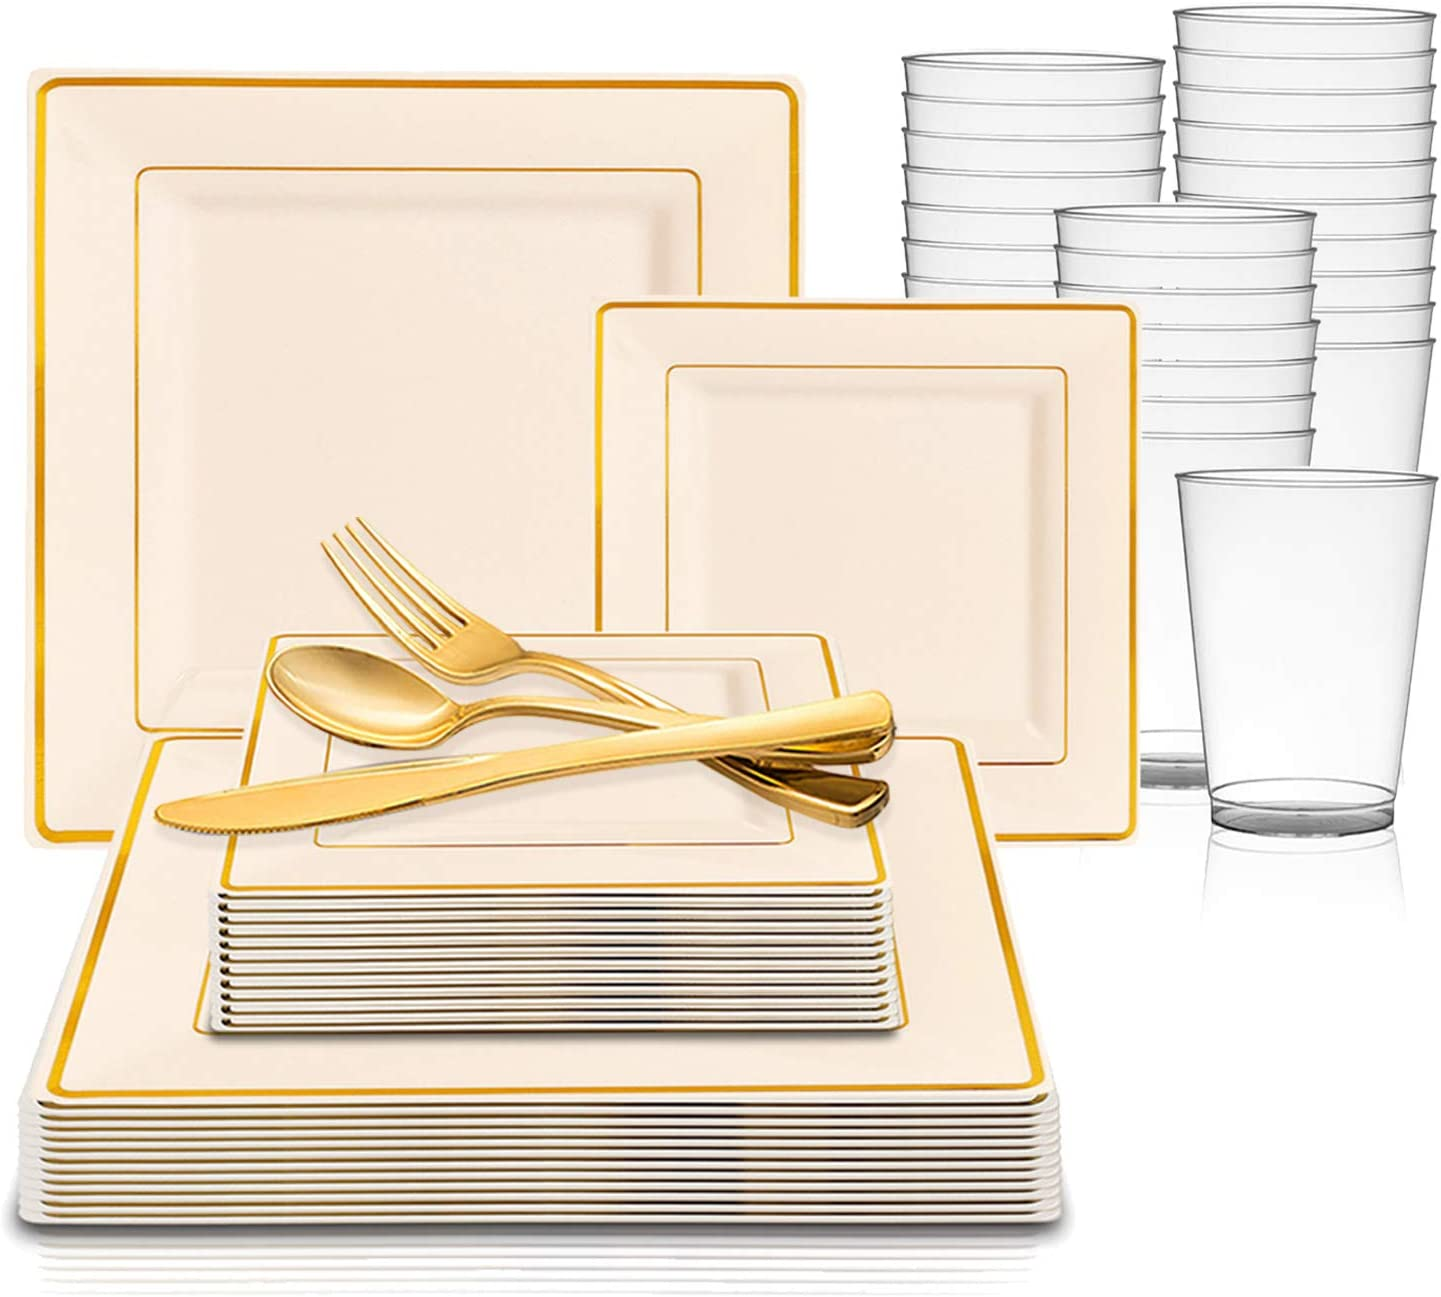 360 Piece Elegant Disposable Plastic Dinnerware Set for 60 Guests - Fancy Square Ivory with Gold Rim Dinner Plates, Dessert Plates, Silverware Set & Cups For Wedding, Easter, Birthday & All Occasions 71aCO2cQy6L